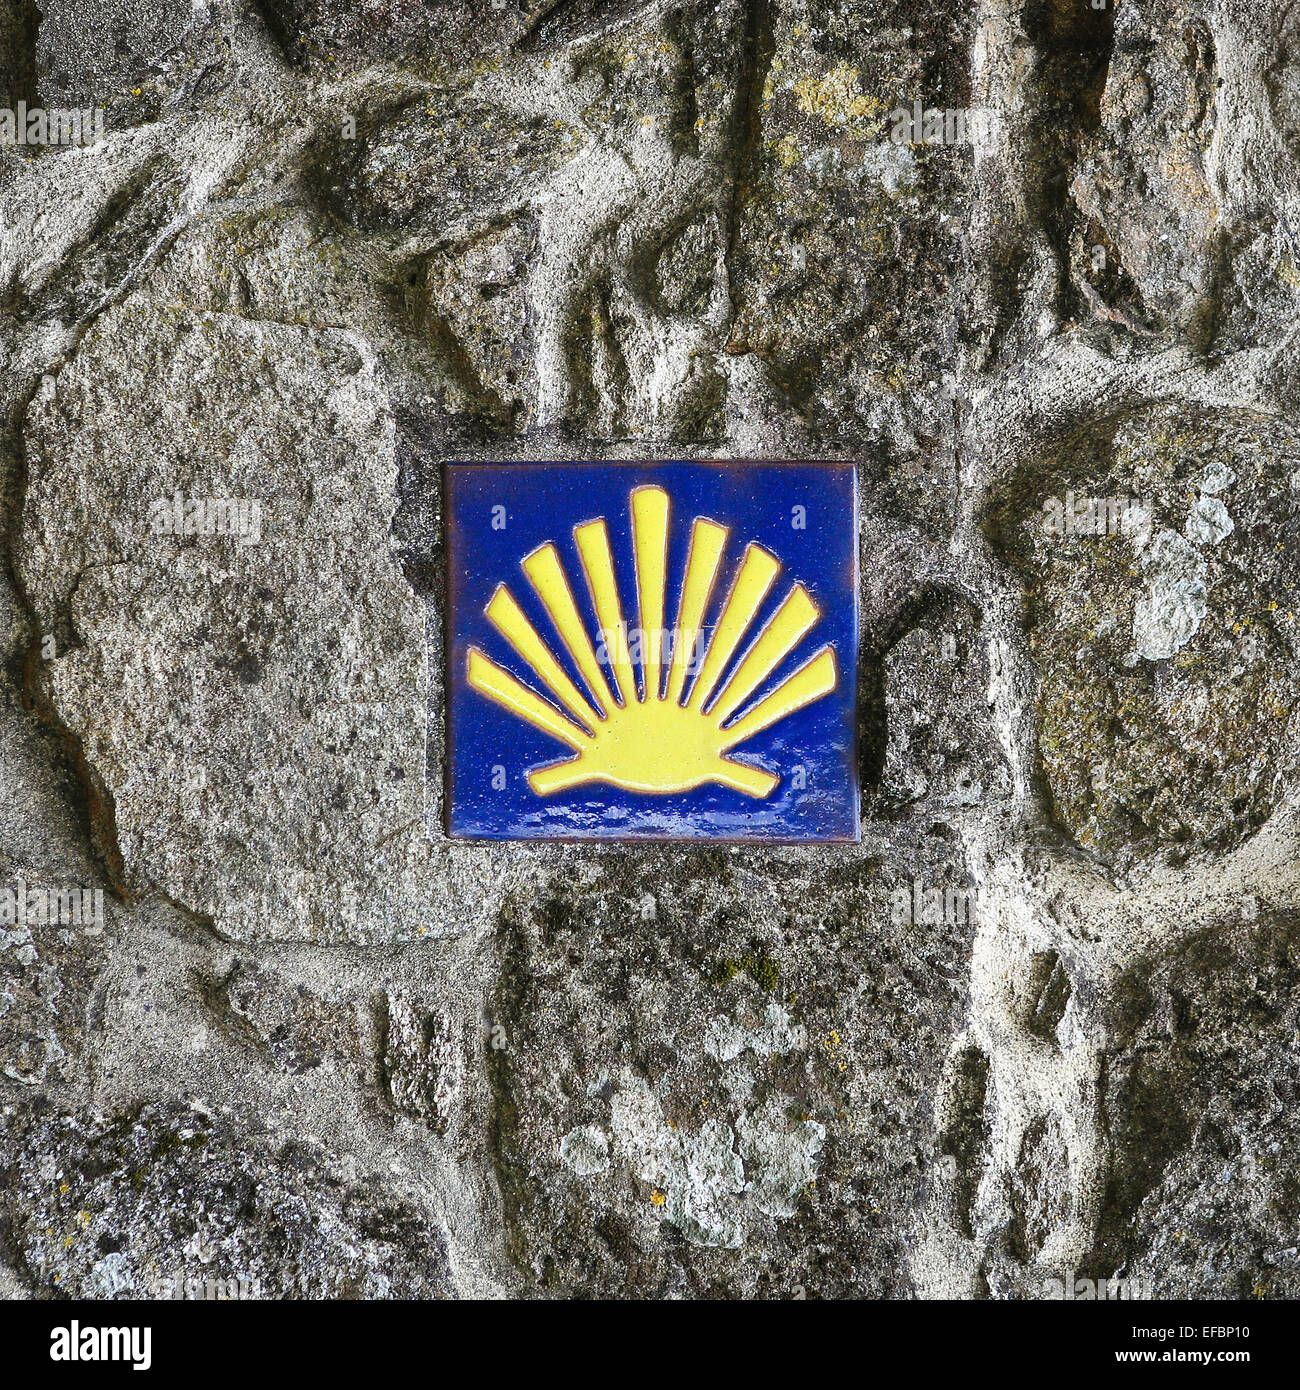 Pilgrim's Shell (scallop), Symbol of the Way of Saint James in Tui, Galicia, Spain. - Stock Image